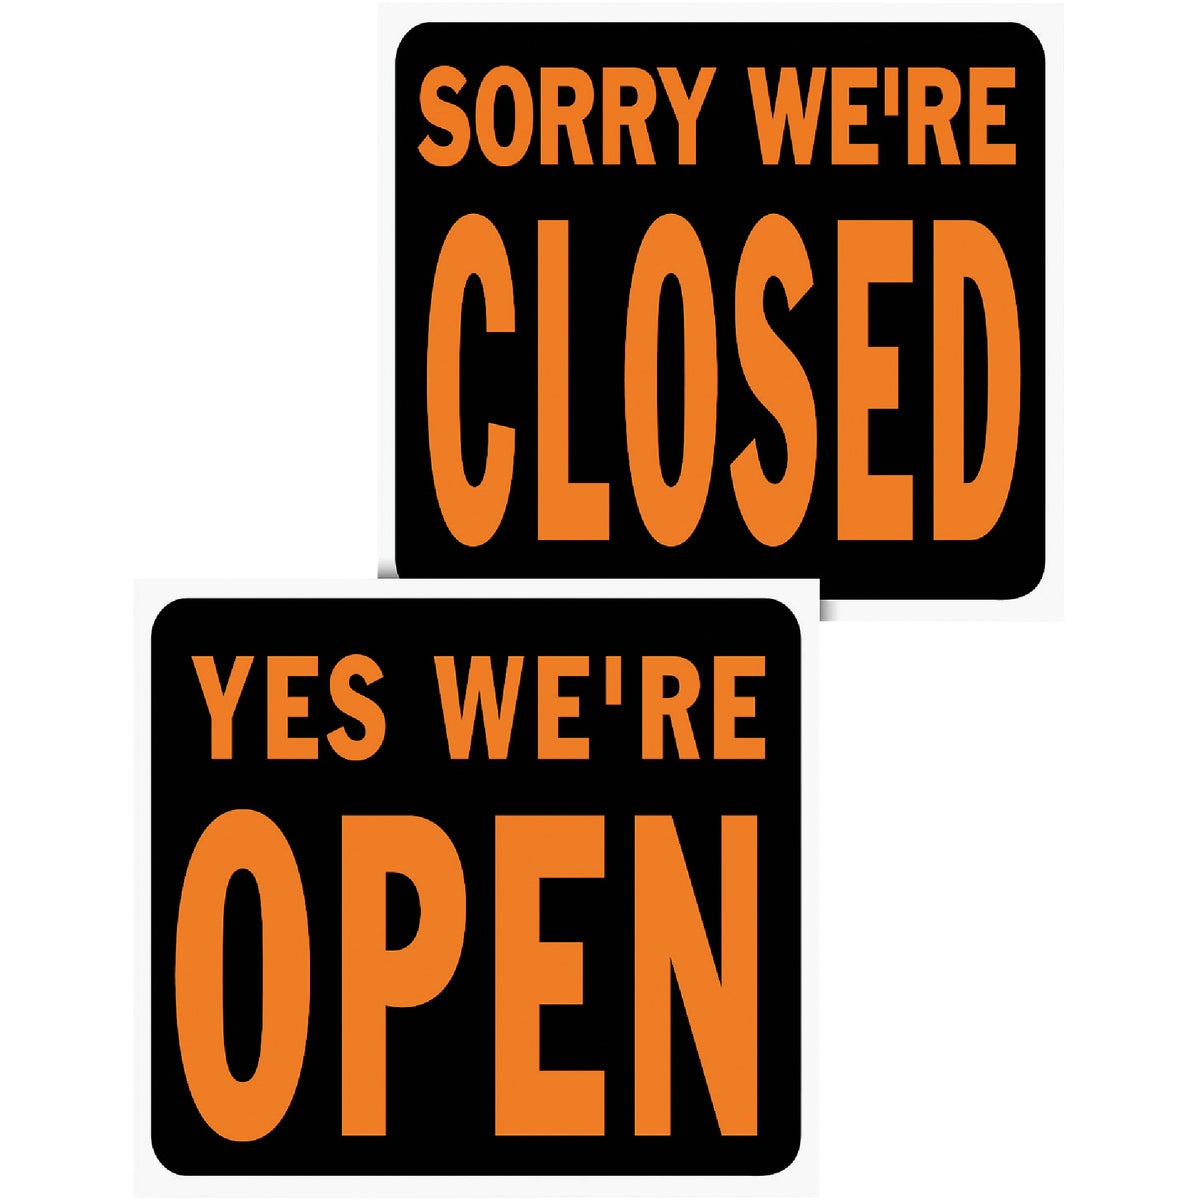 15X19 OPEN/CLOSED SIGN